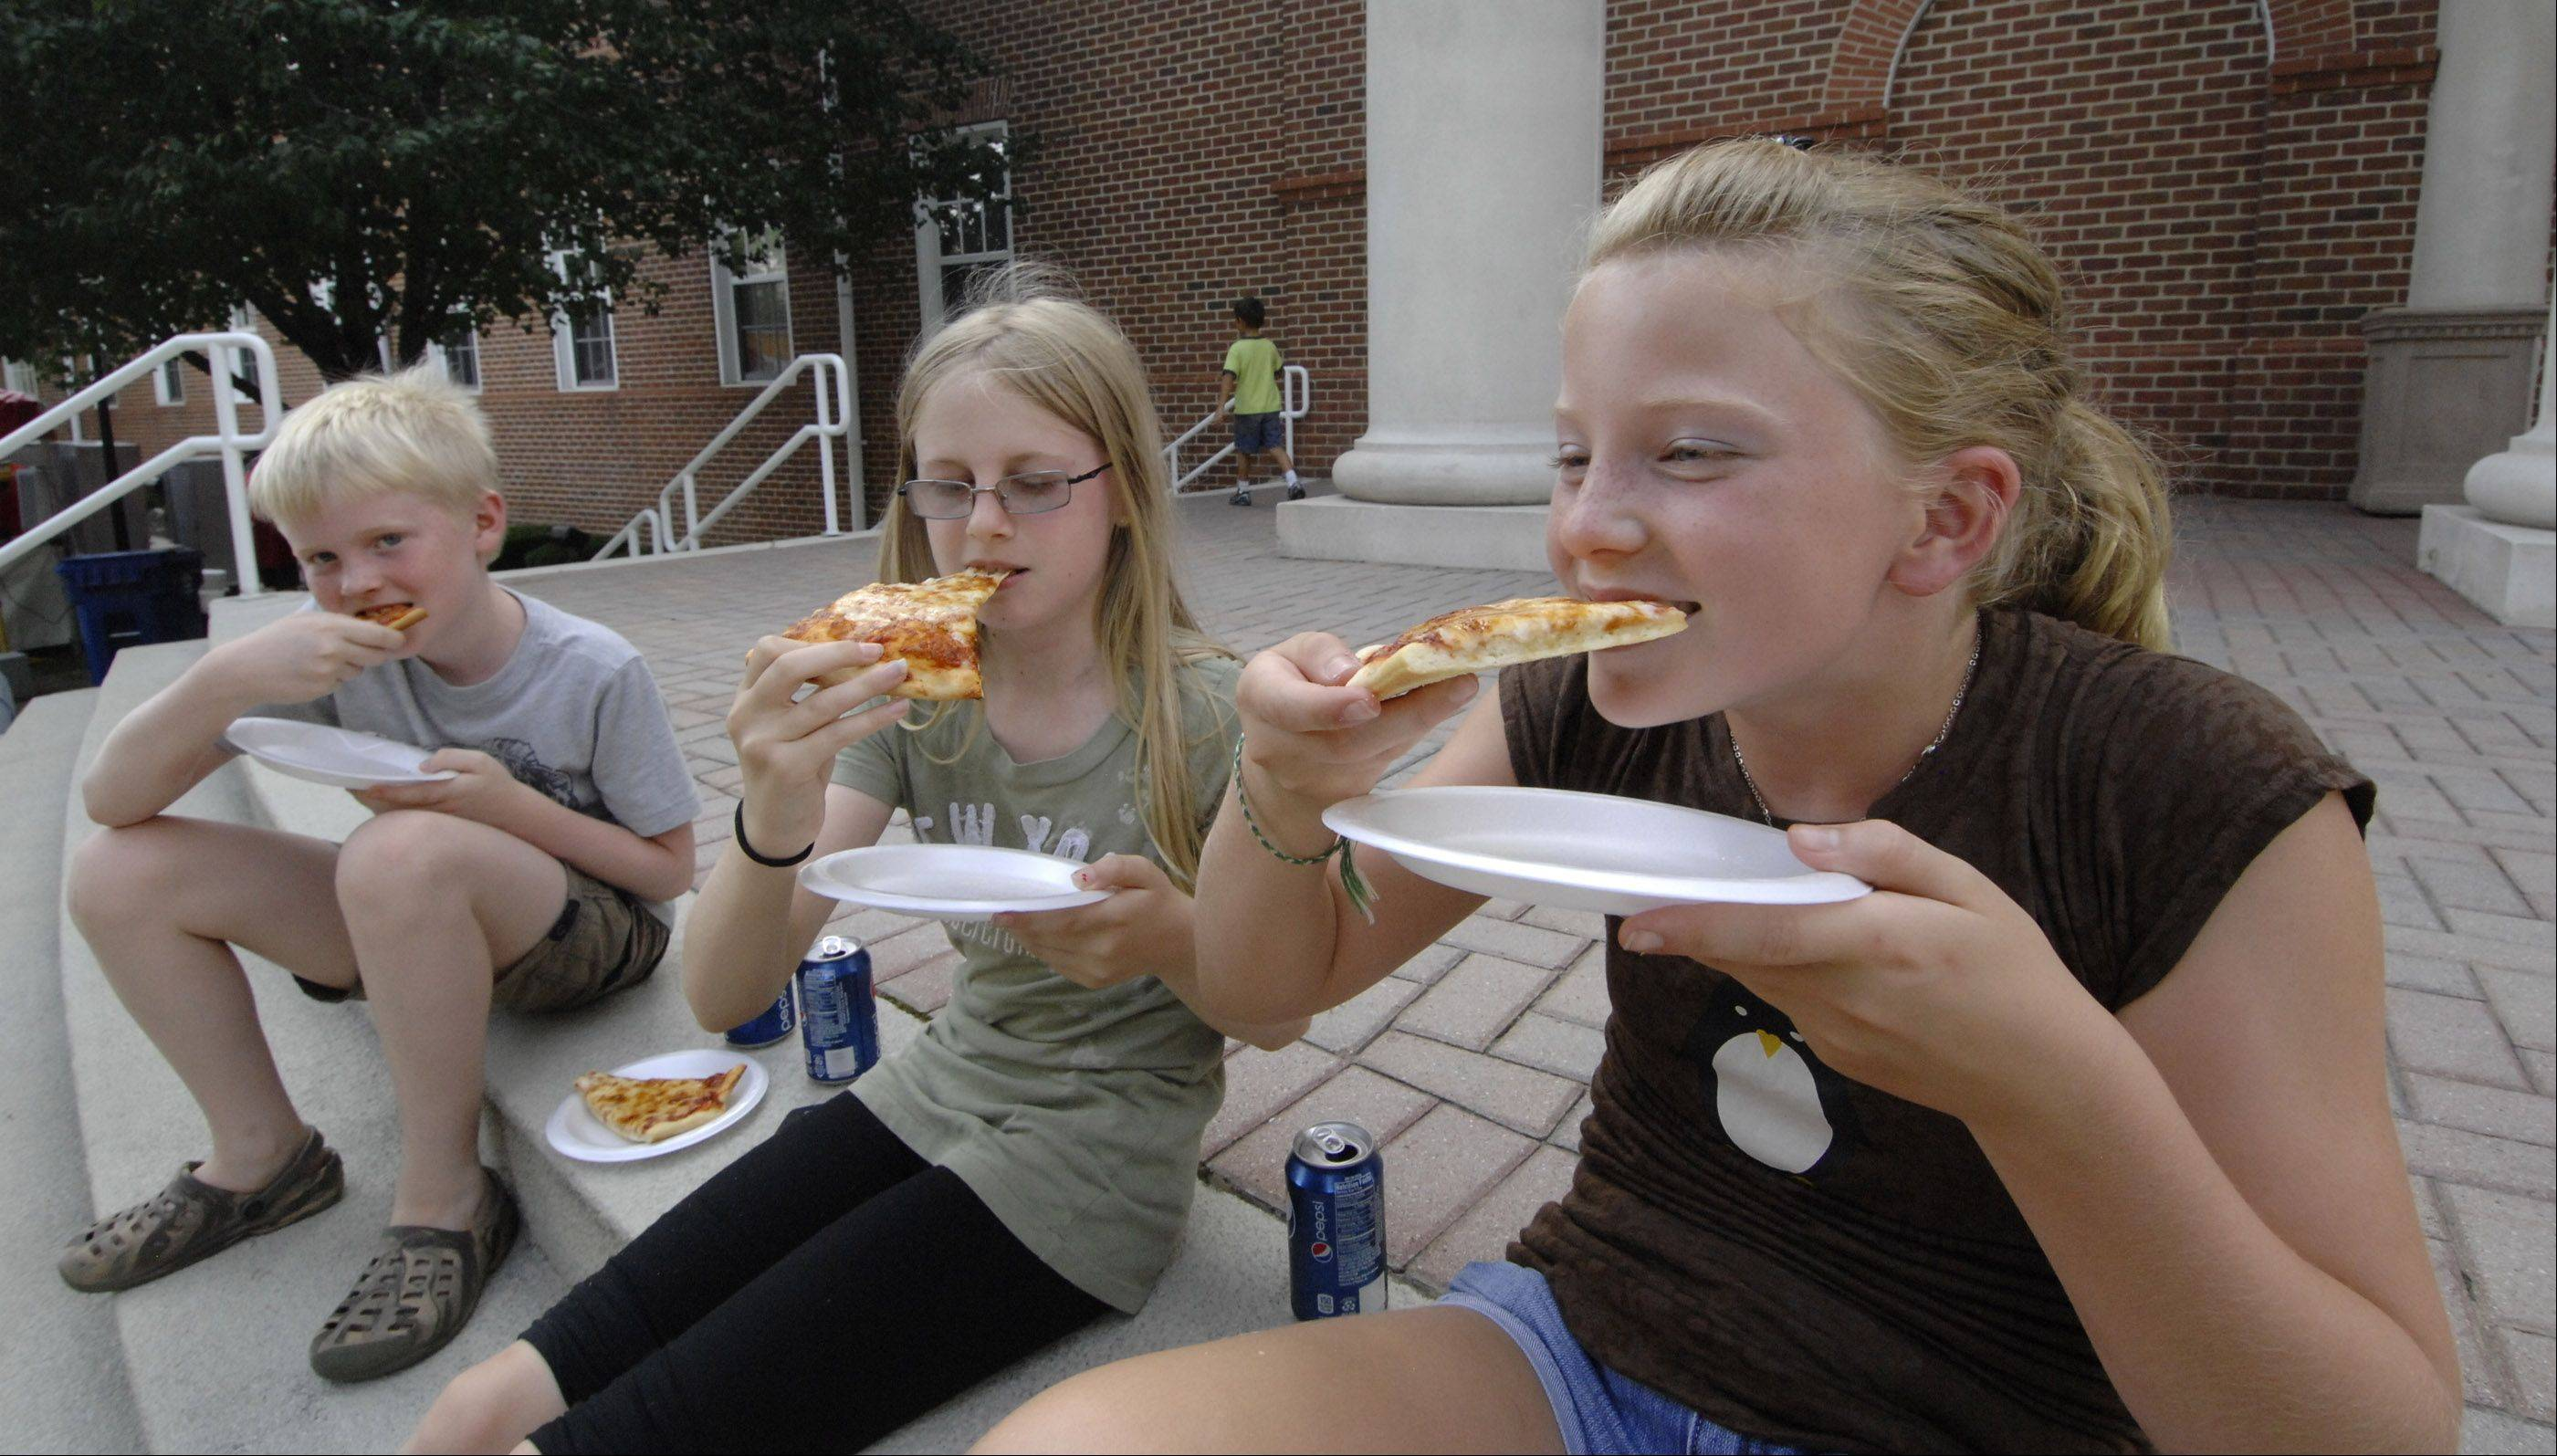 Addison residents l-r, Alex Eddy, Marie Eddy, and Melissa Krefft chow down on pizza at $1.00 per slice, on the village hall steps.